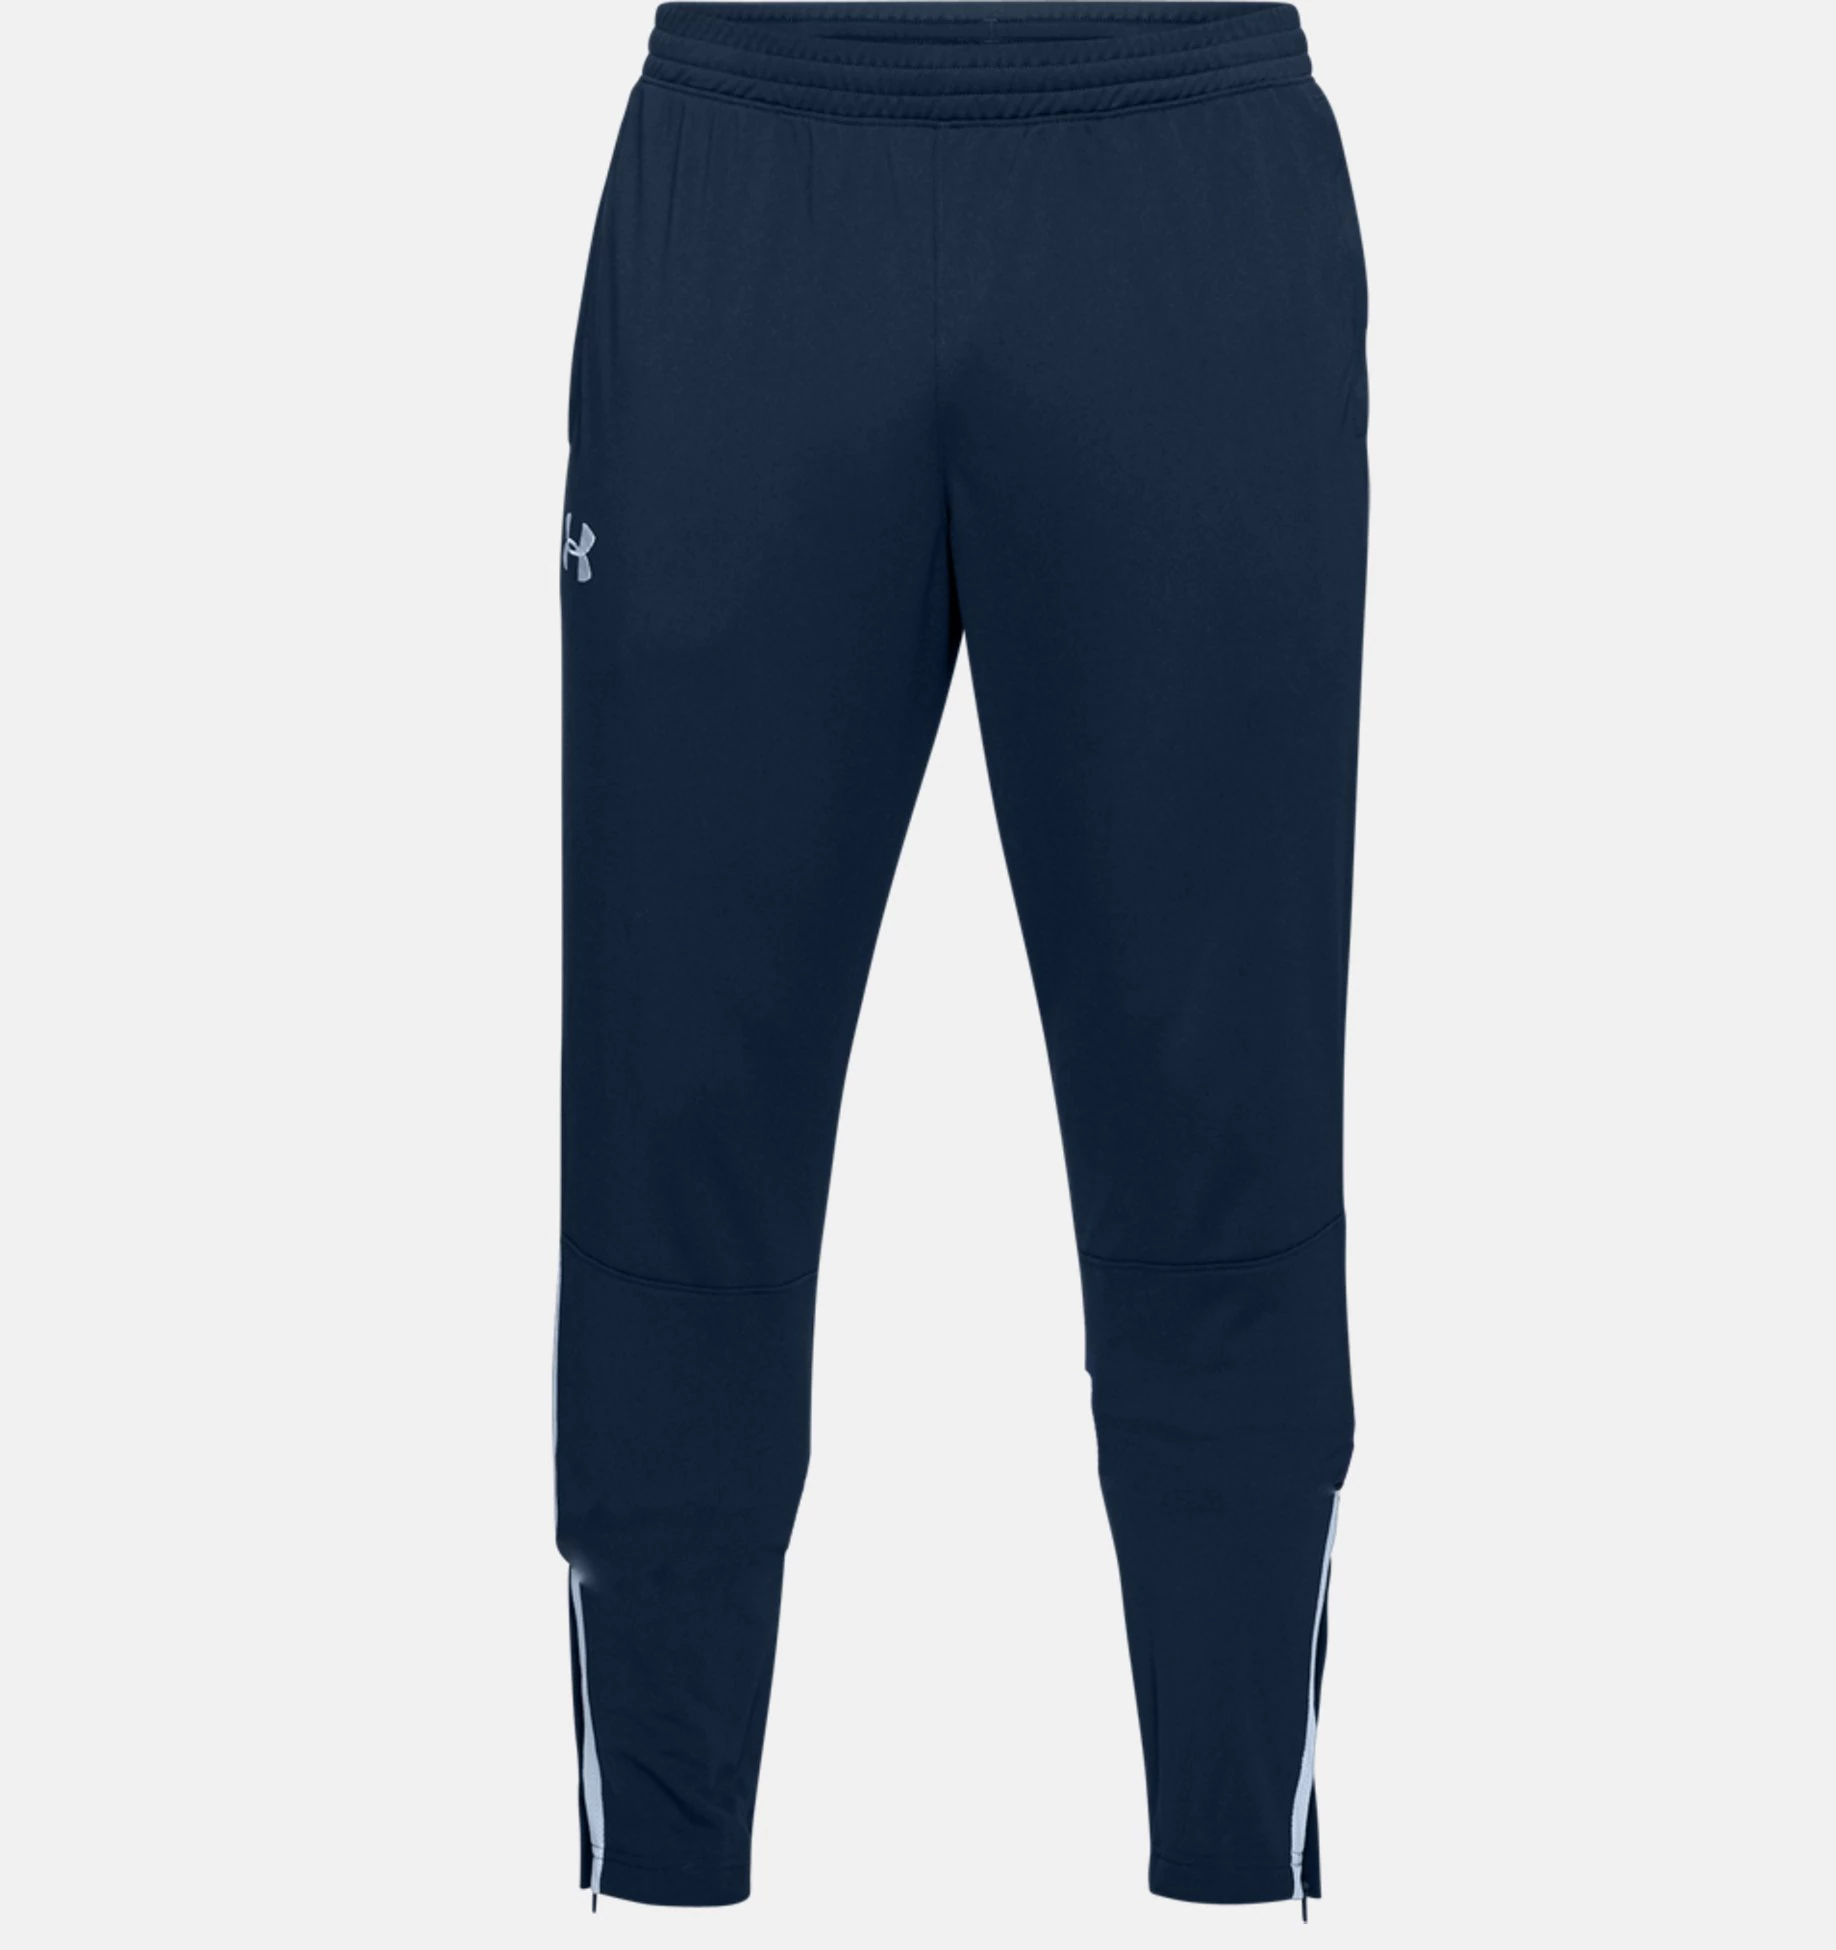 Under Armour Sportstyle Pique, modré